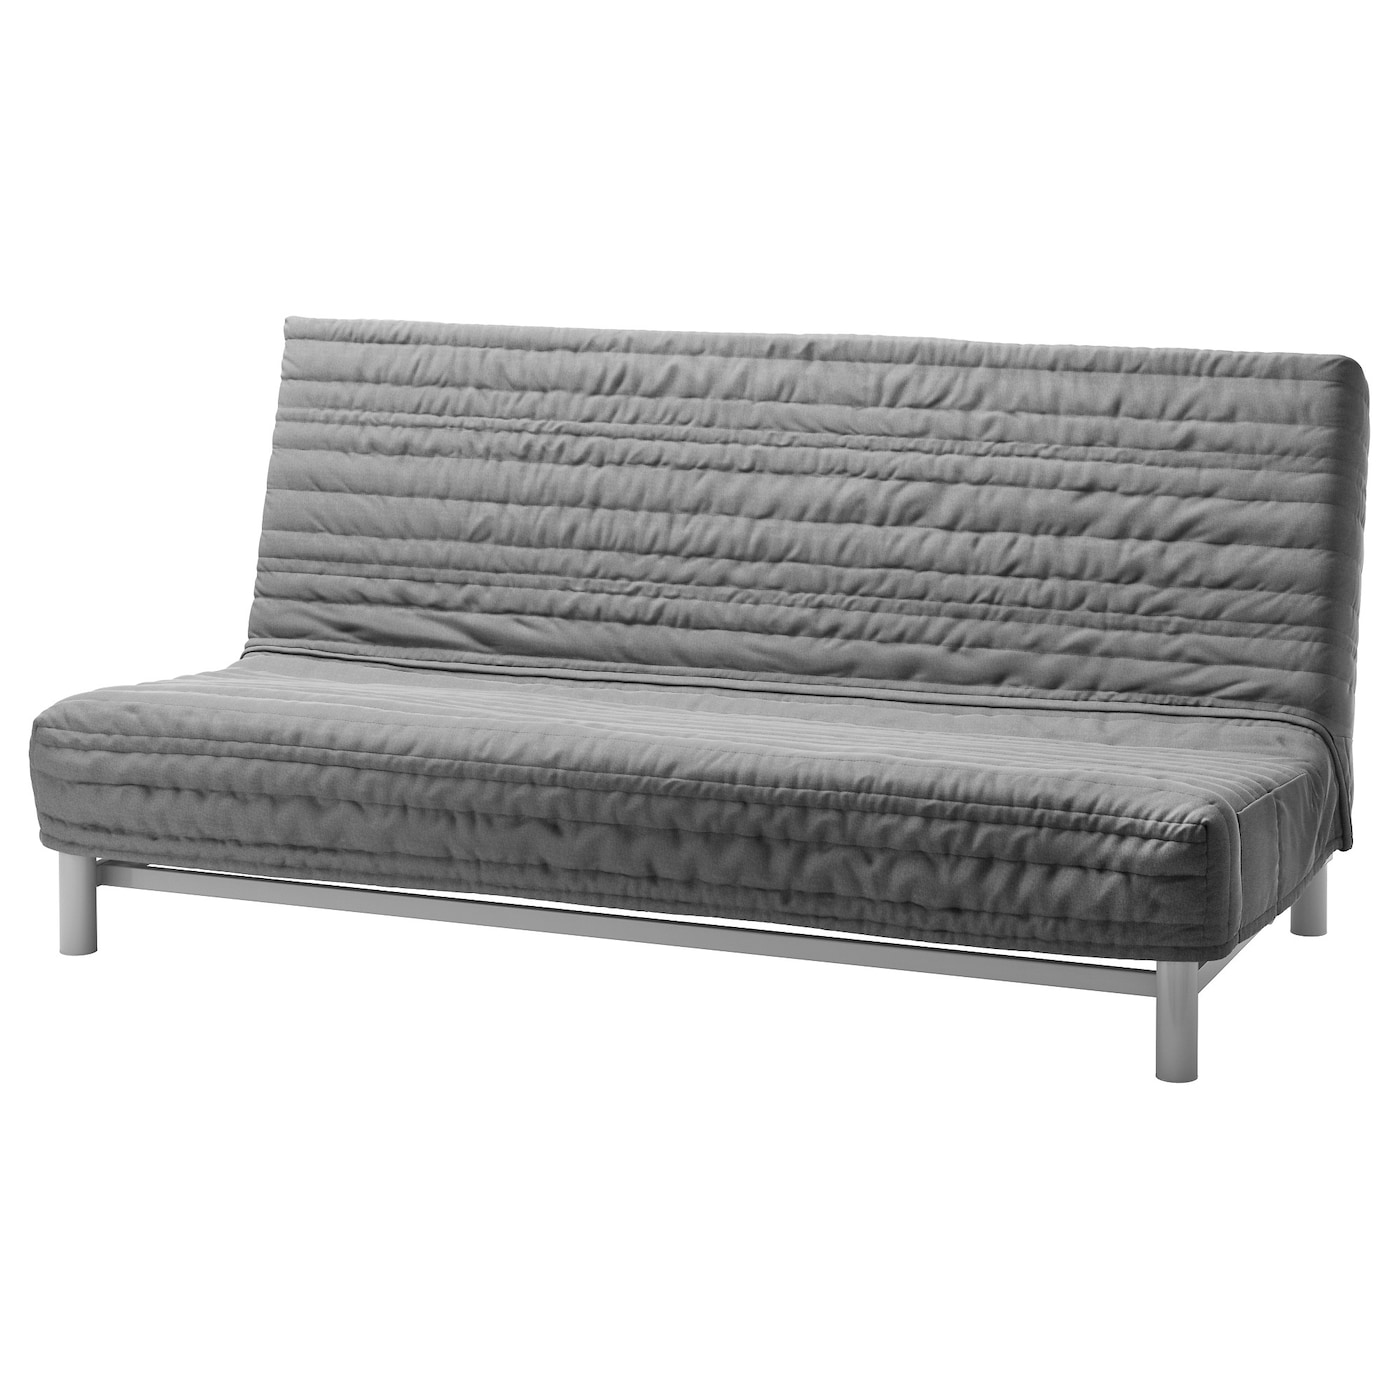 Ikea Beddinge Loevaas Three Seat Sofa Bed Readily Converts Into A Bed Big Enough